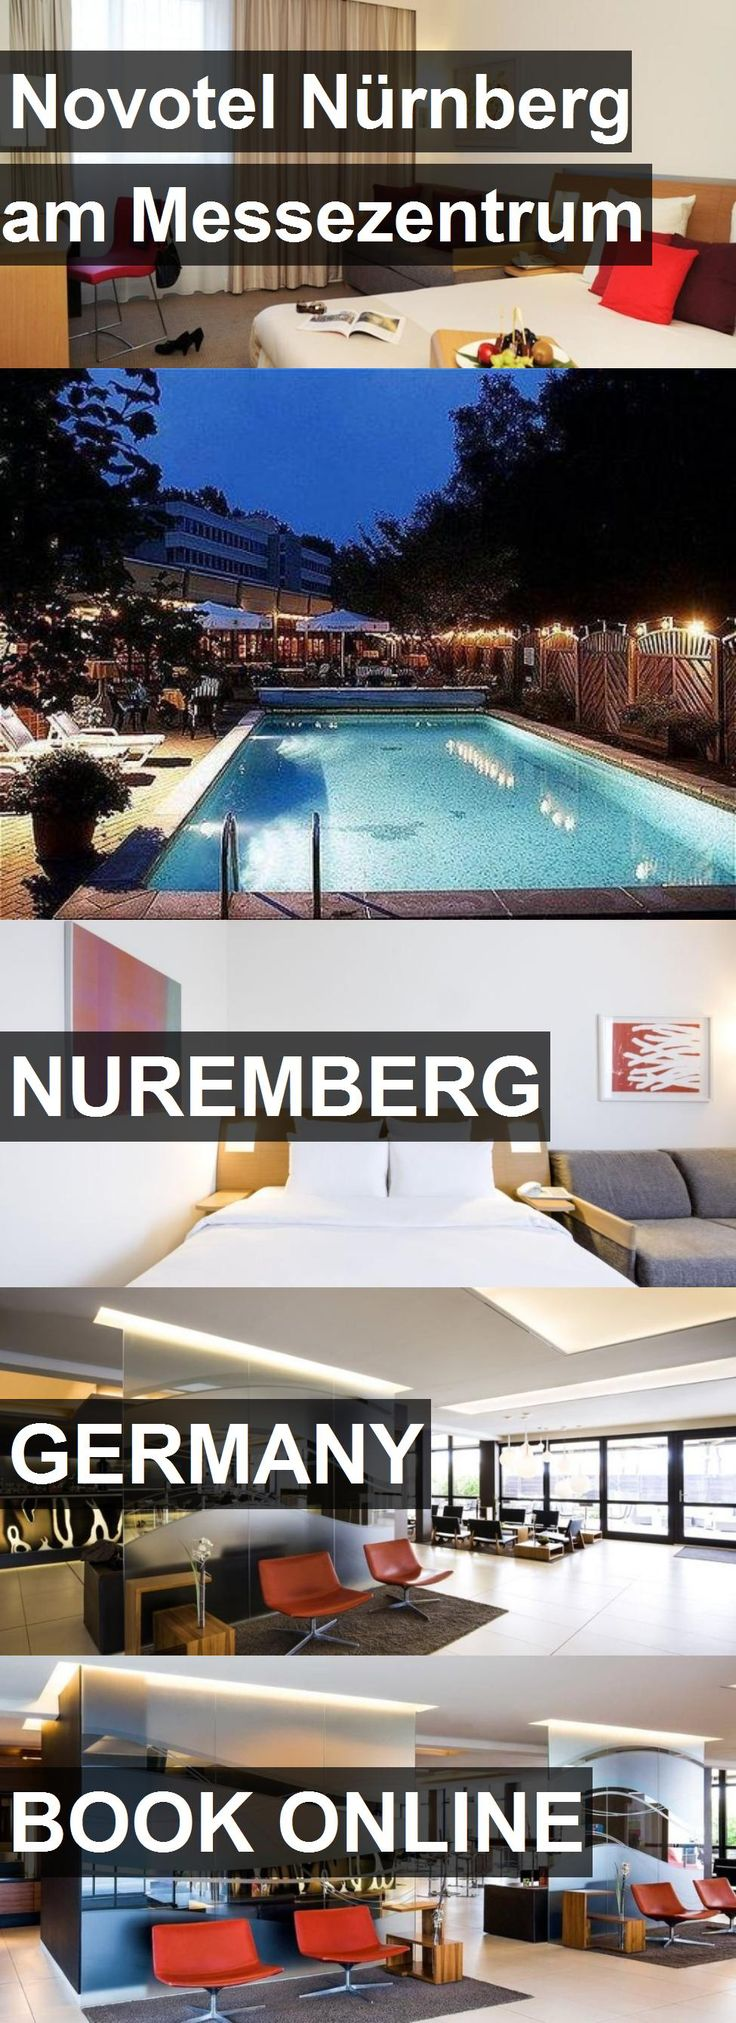 Hotel Novotel Nürnberg am Messezentrum in Nuremberg, Germany. For more information, photos, reviews and best prices please follow the link. #Germany #Nuremberg #NovotelNürnbergamMessezentrum #hotel #travel #vacation